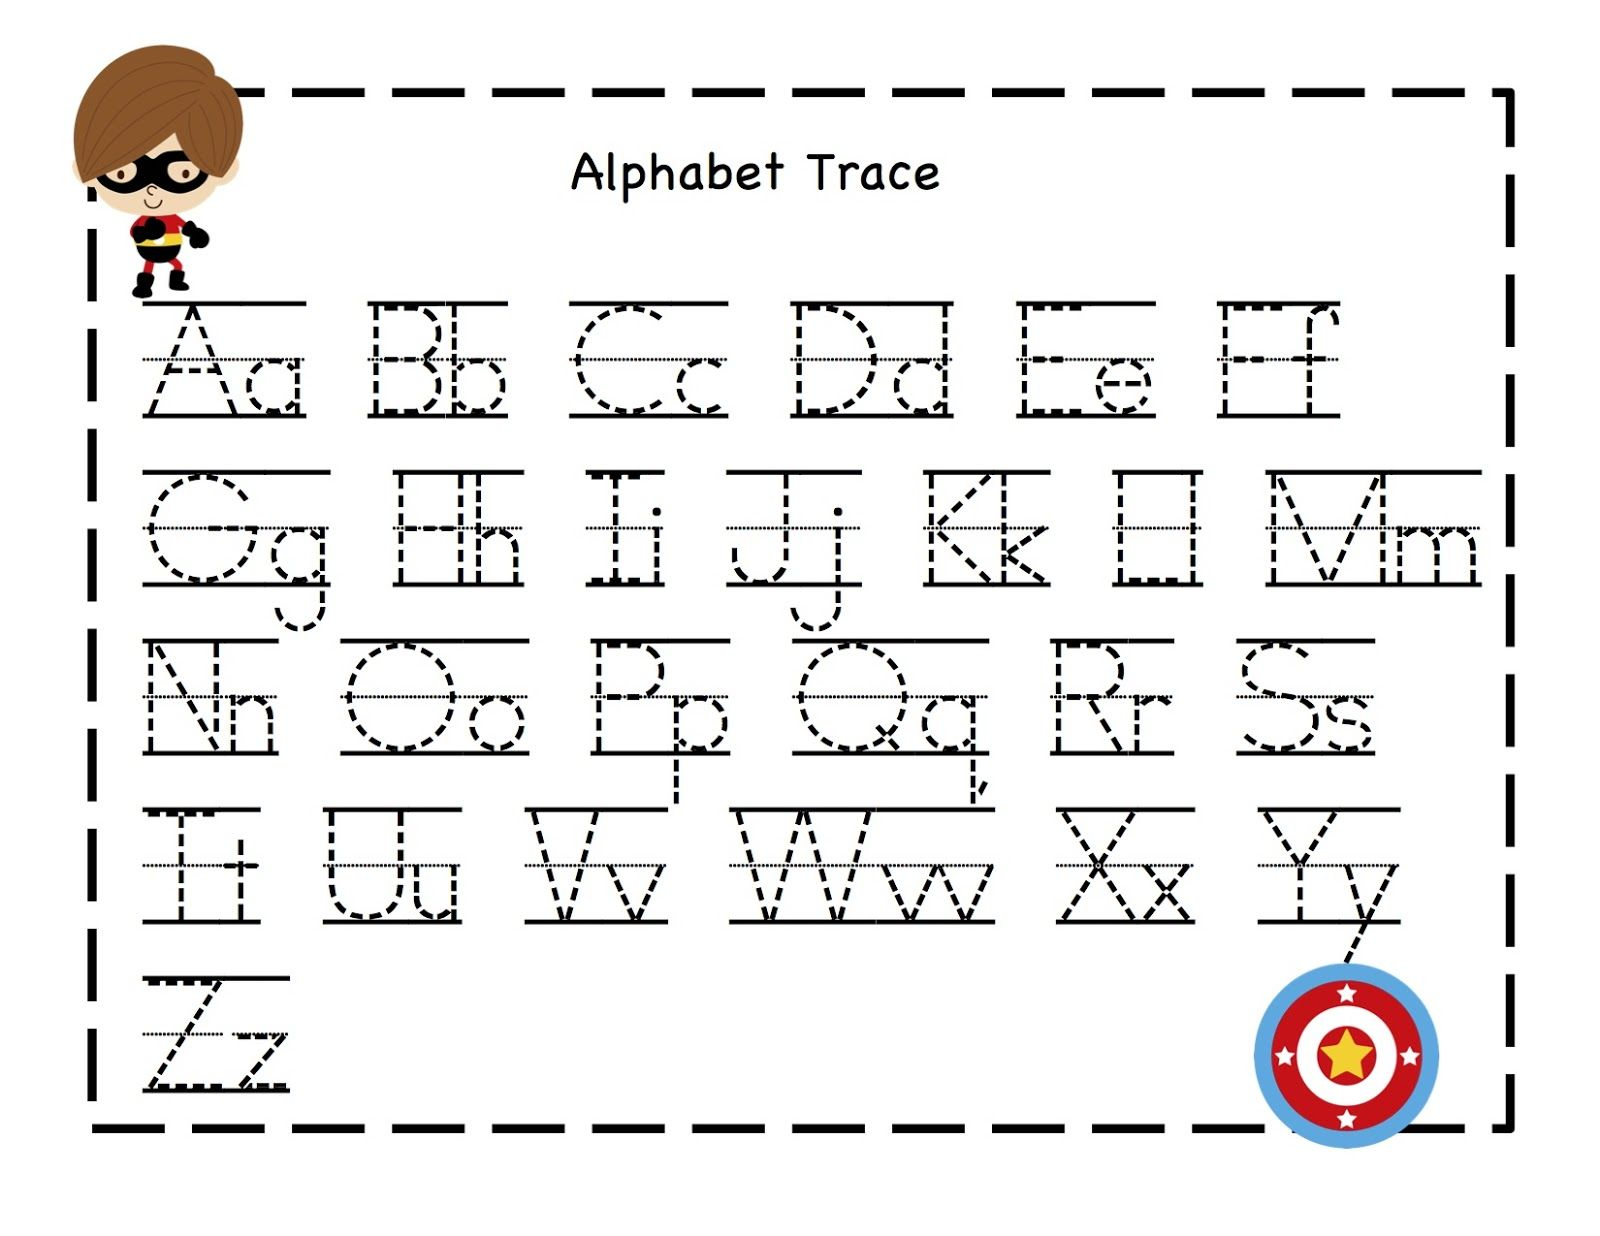 small resolution of ABC Tracing Sheets for Preschool Kids   Alphabet preschool